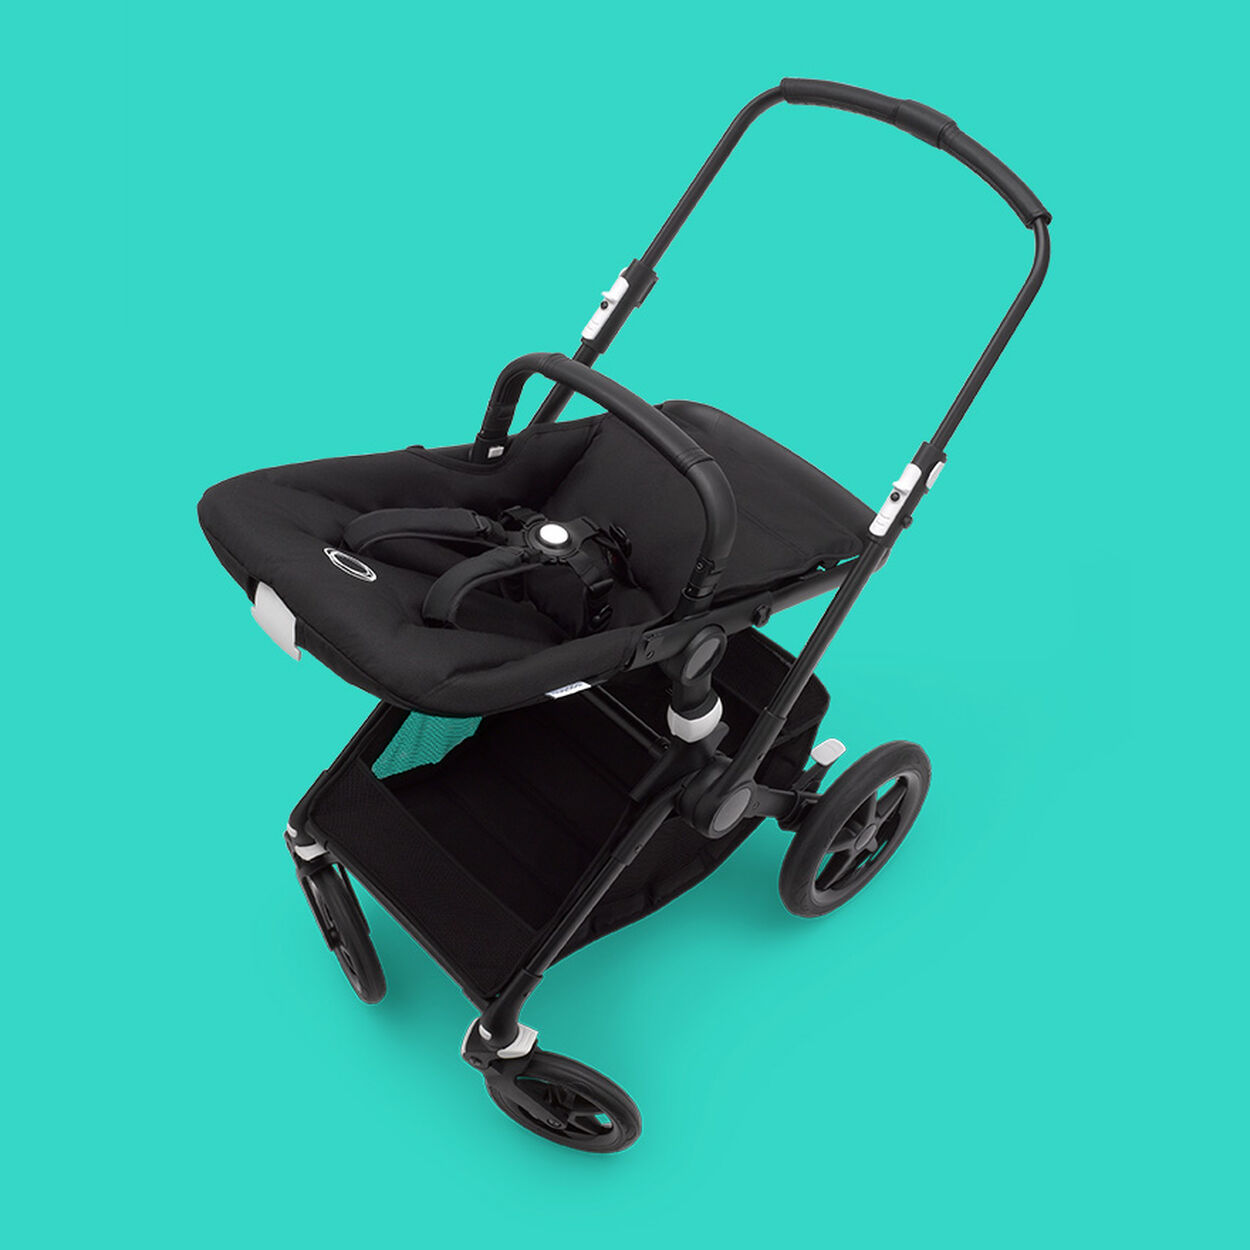 Bugaboo Fox 2 stroller chassis and seat